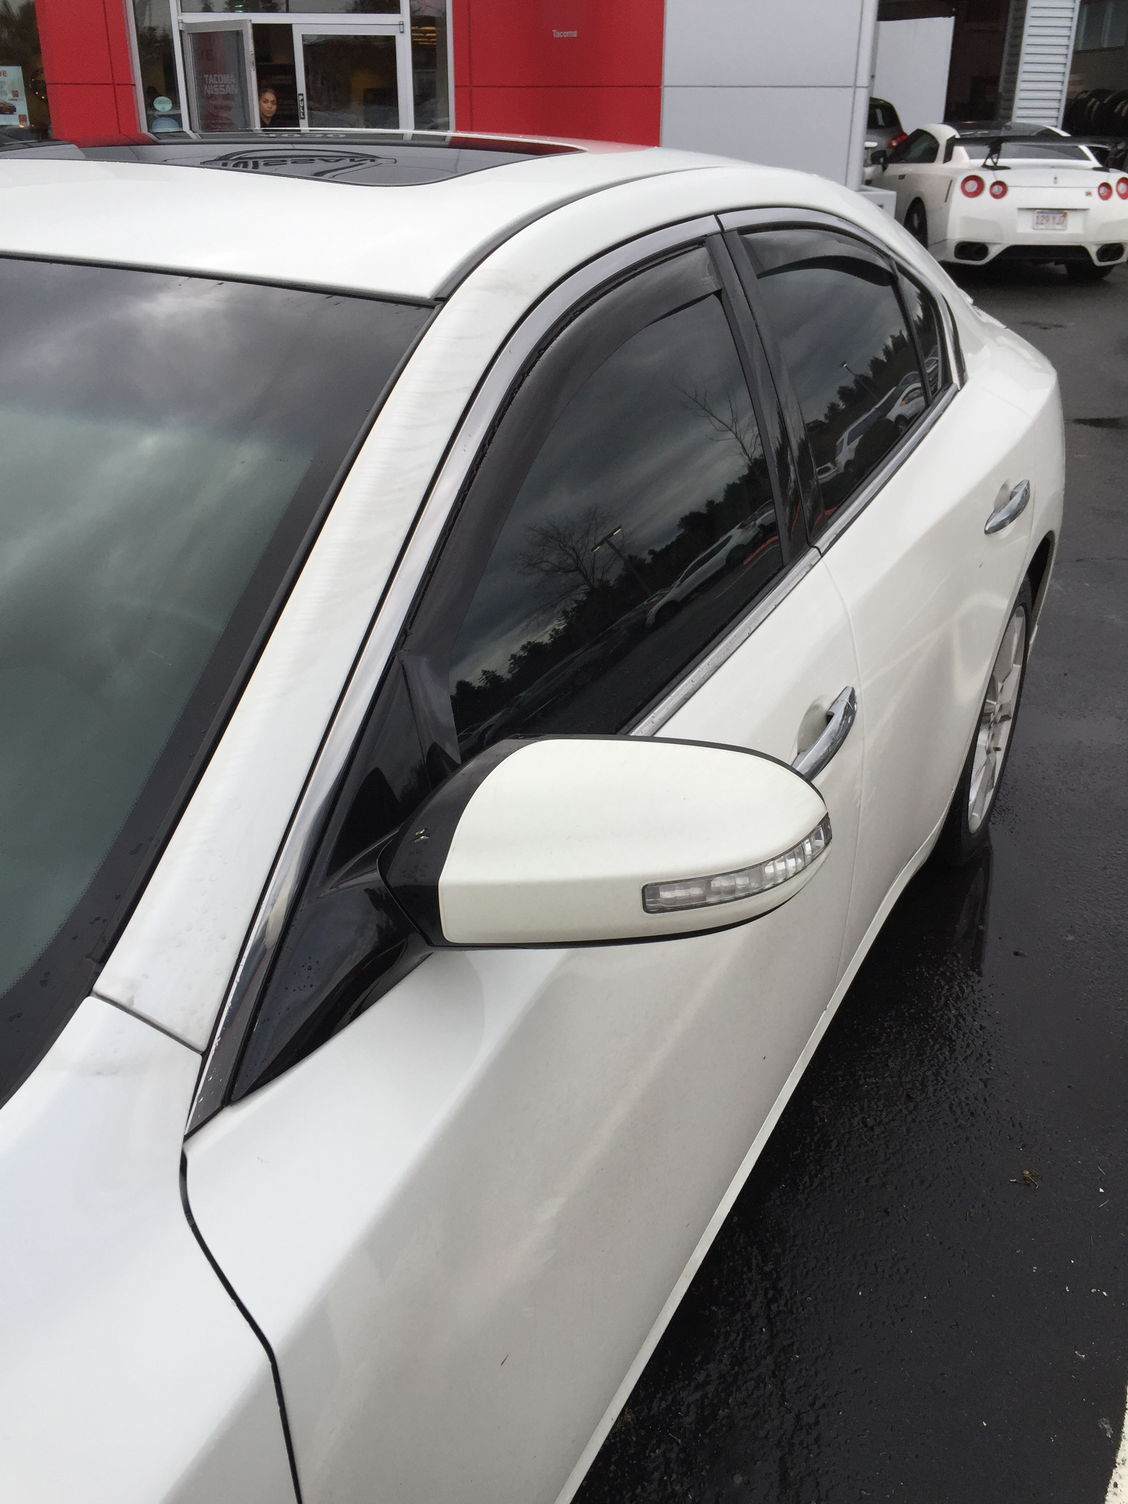 Weathertech Window Deflectors And Nissan All Weather